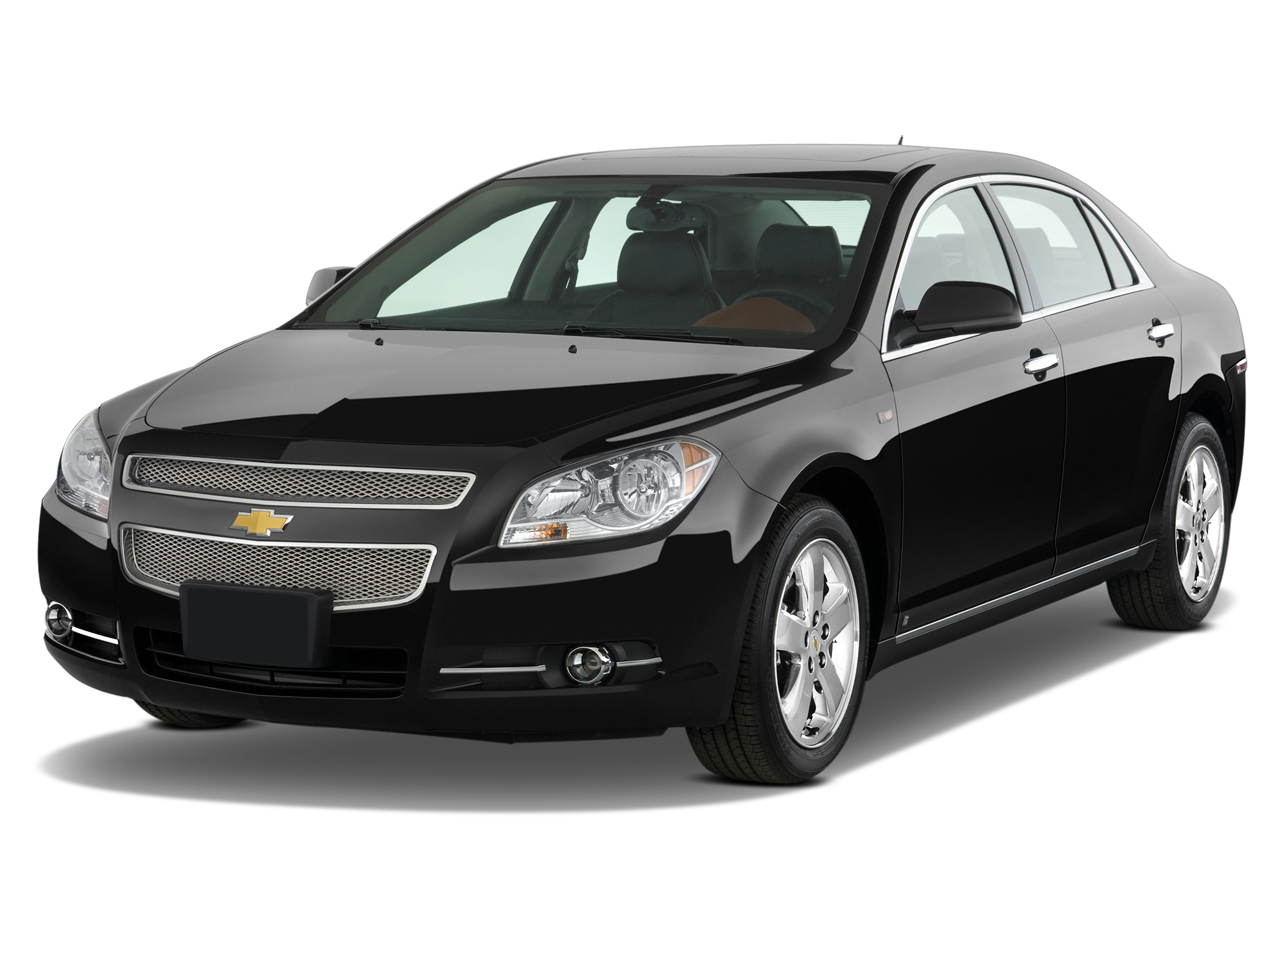 2012 Chevrolet Malibu Chevy Review Ratings Specs